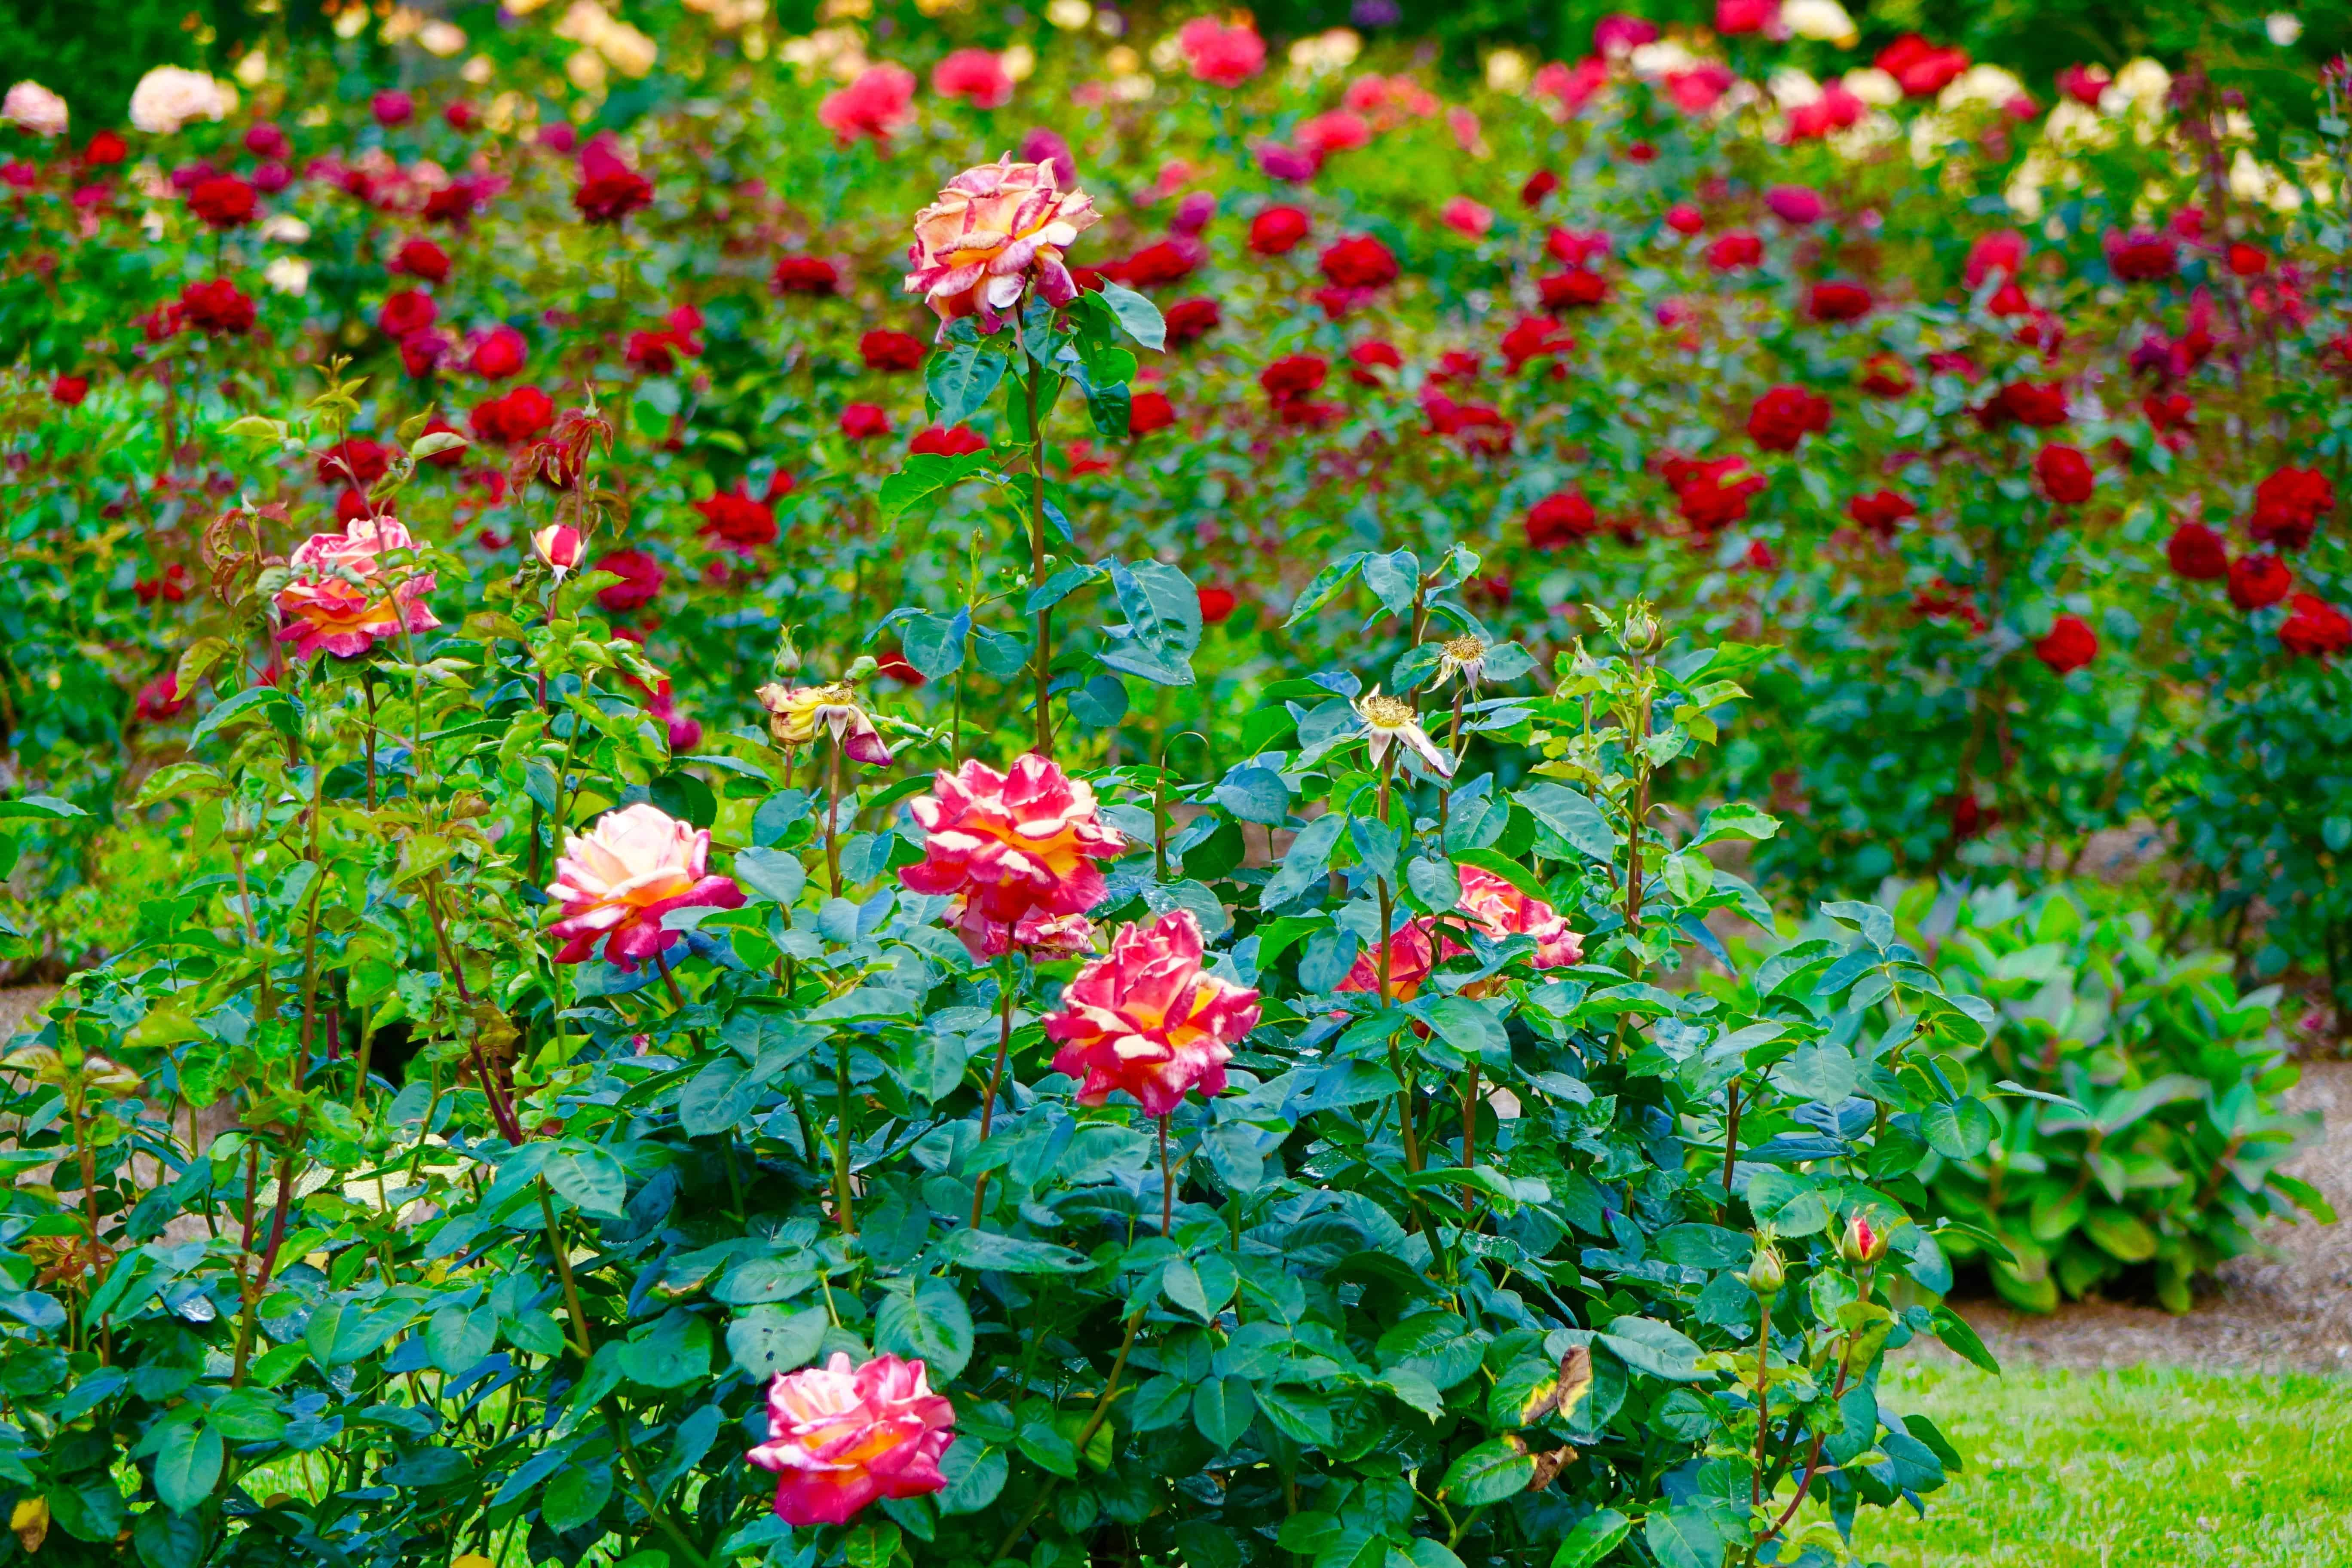 40 Amazing Rose Pictures To Inspire You